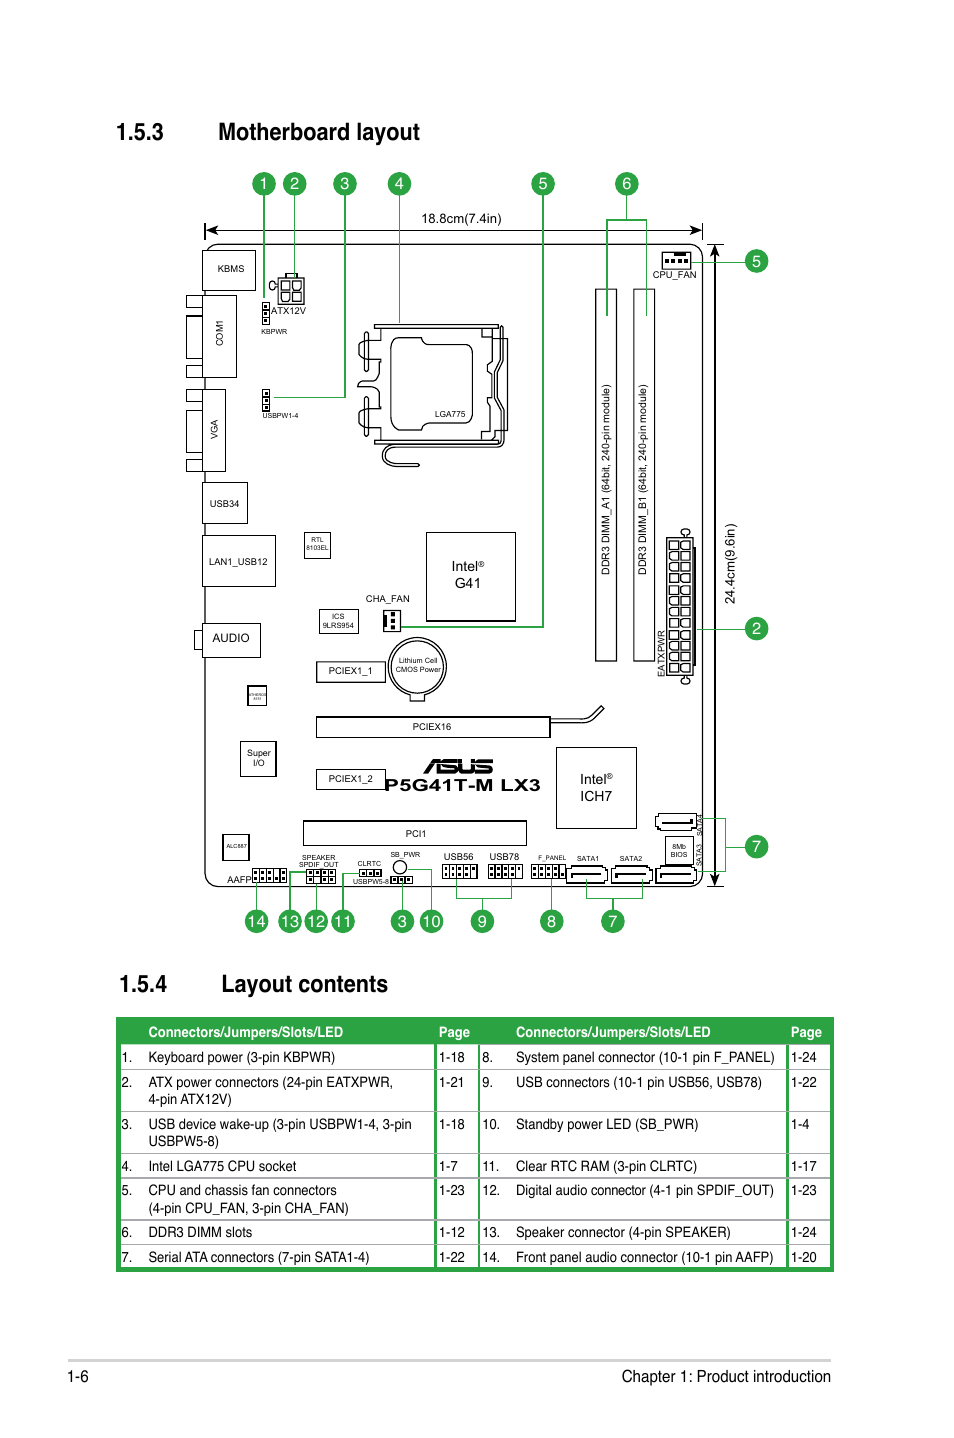 Front Panel Audio Wiring Diagram Schematics Diagrams Asus 3 Motherboard Layout 4 Contents 6 Rh Manualsdir Com Car Stereo